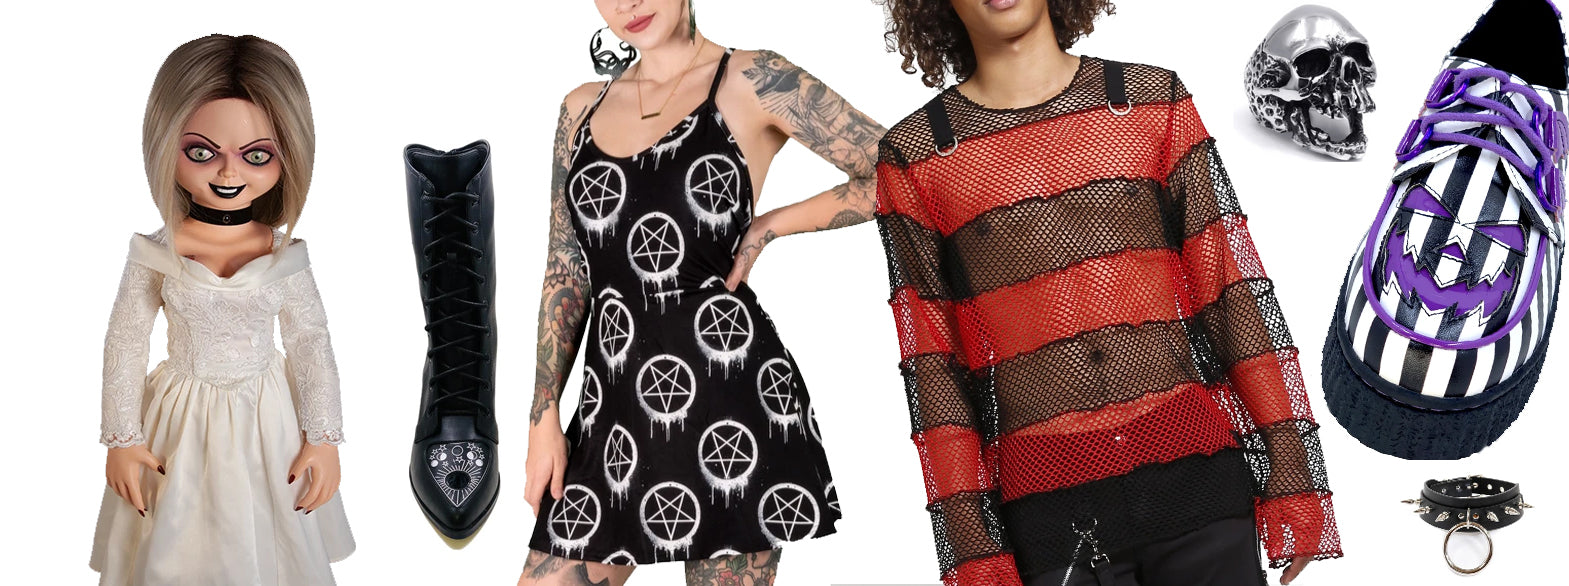 collage of products available in store. left to right: tiffany doll bride of chucky, pair of ouija boots, inverted pentagram dress, mesh red/black striped shirt, skull ring, purple/white striped shoes and spiked collar